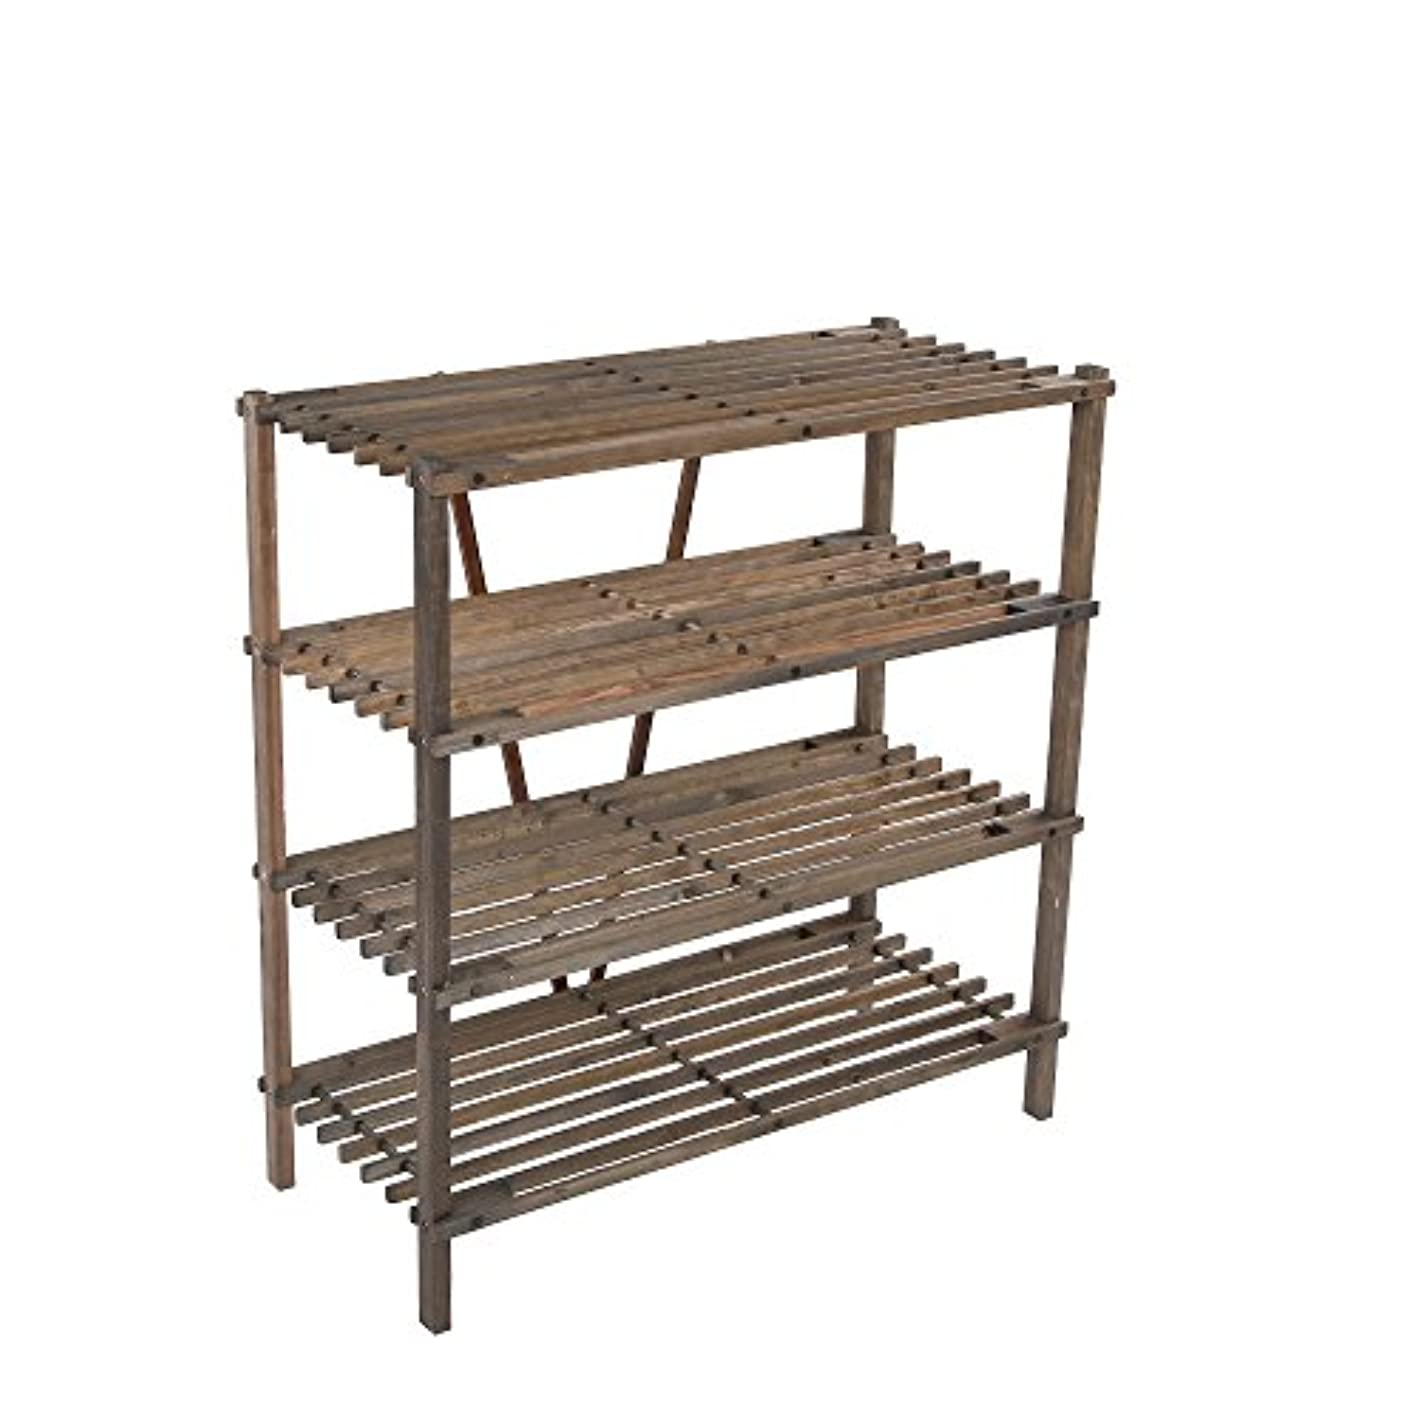 ULTIDECO 4-Tier Solid Wood Shoe Rack, Household Shoes Tower and Storage Organizer Cabinet in Carbon Black stain